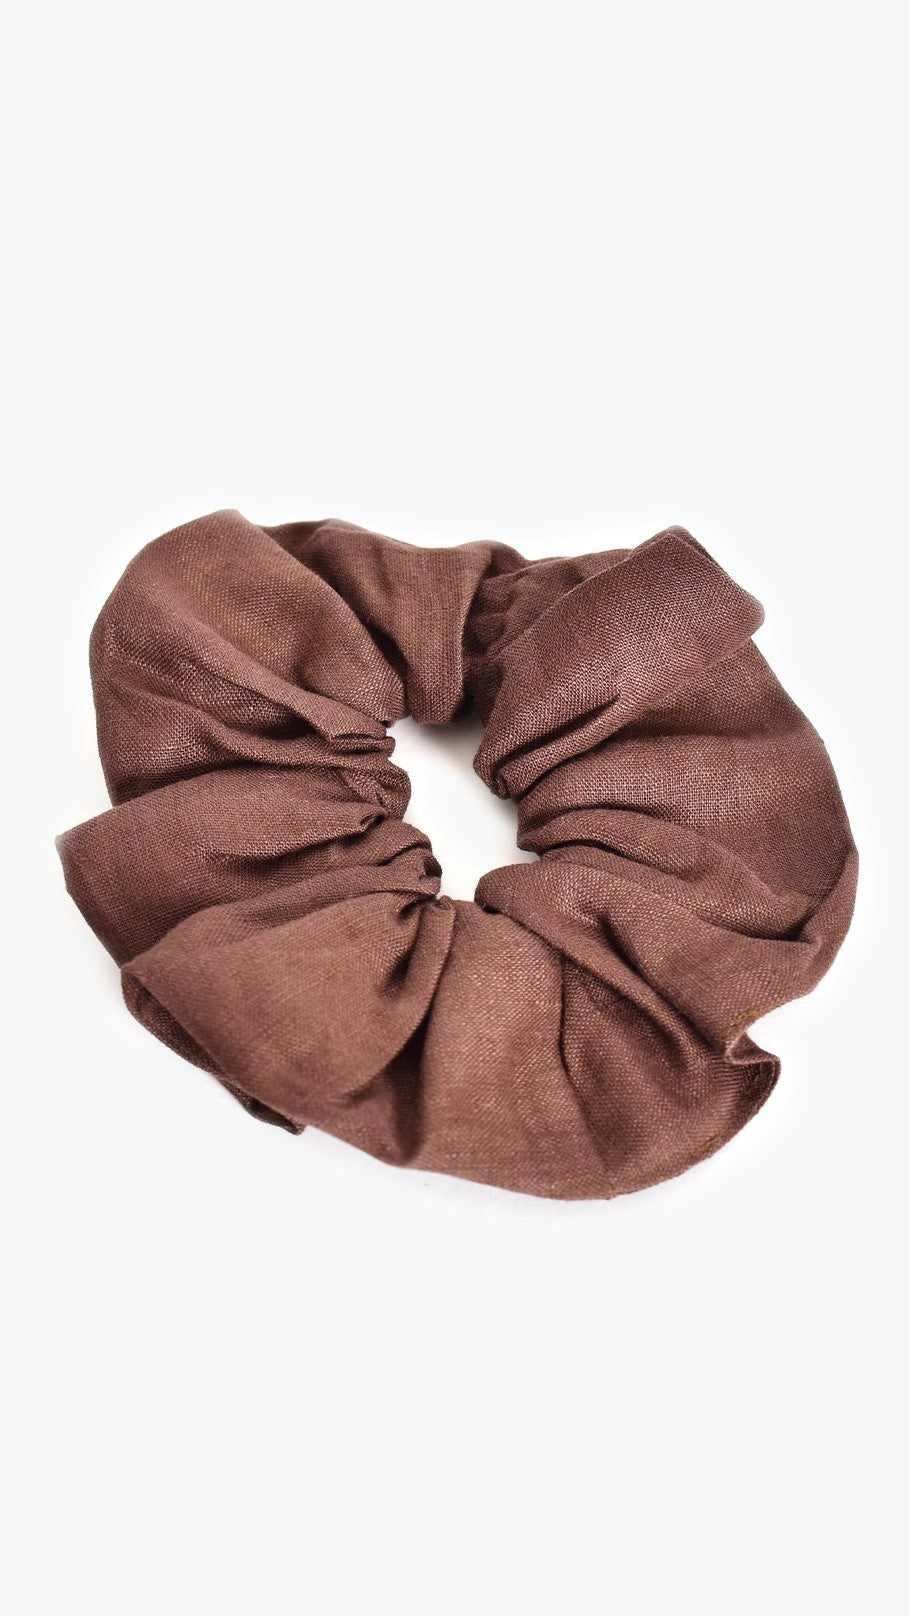 Supersize Linen Scrunchie - Chocolate